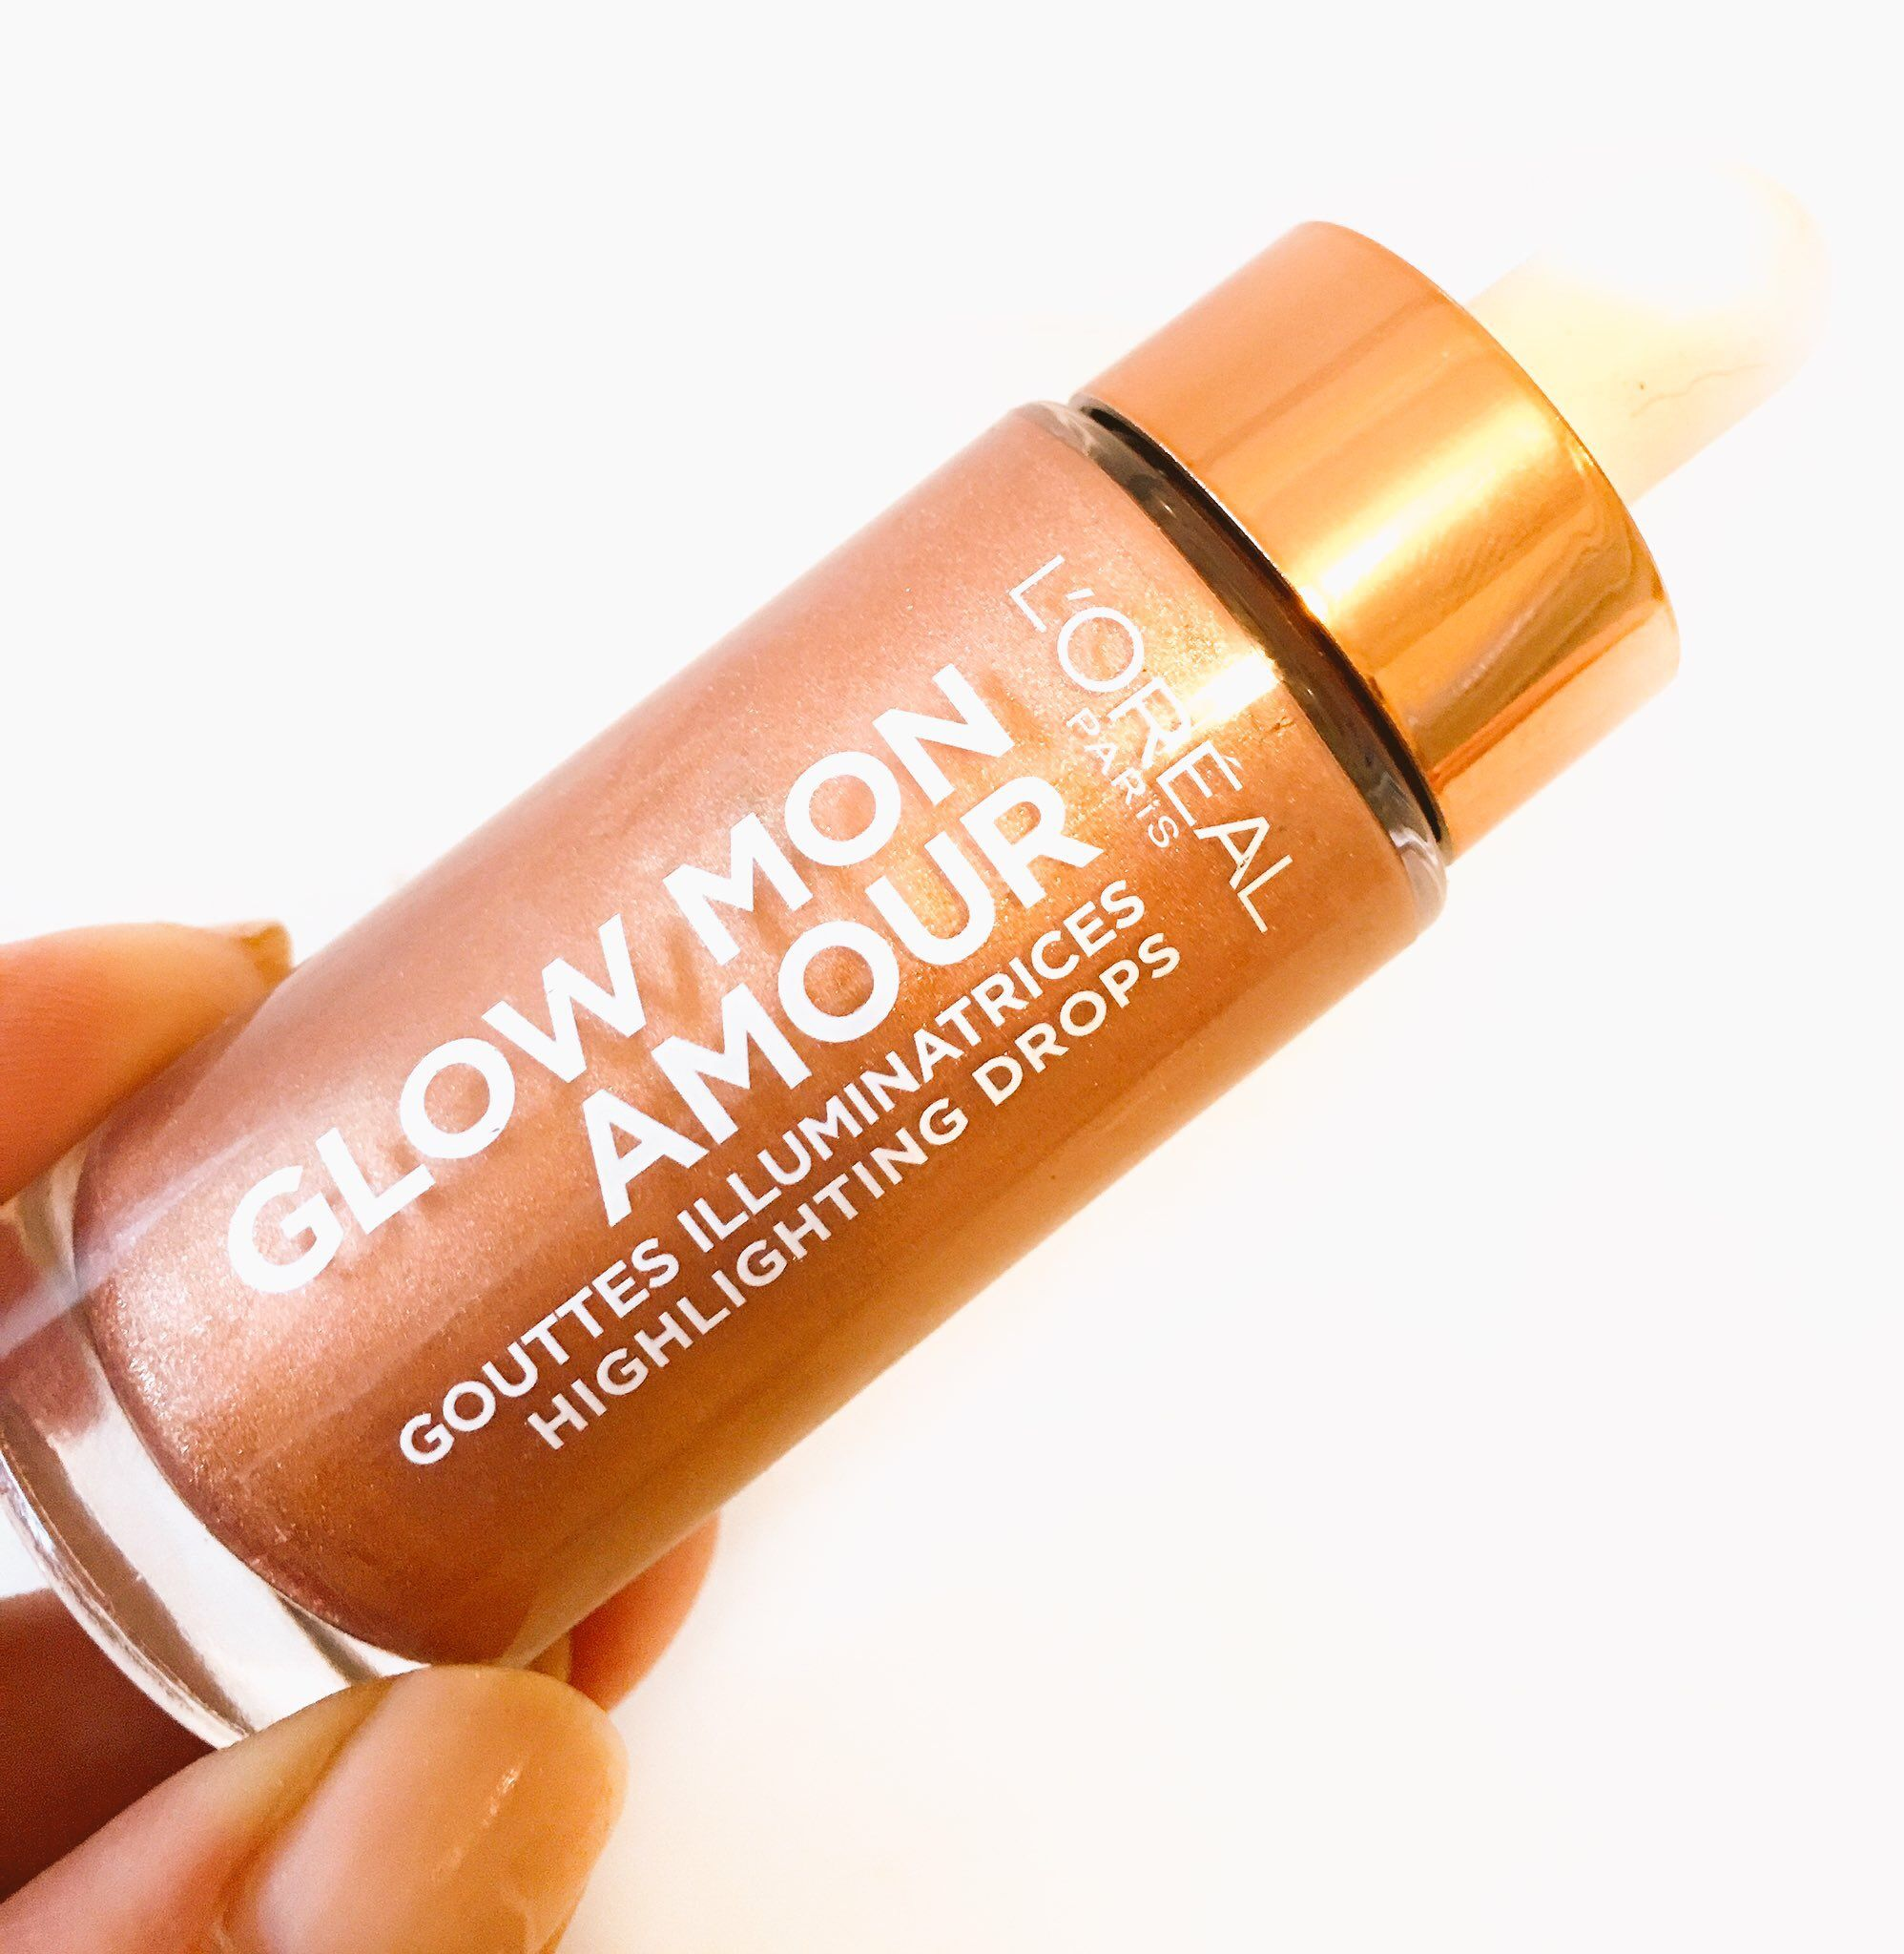 L Oreal Glow Mon Amour Highlighting Drops Review Loreal Glow Natural Glow